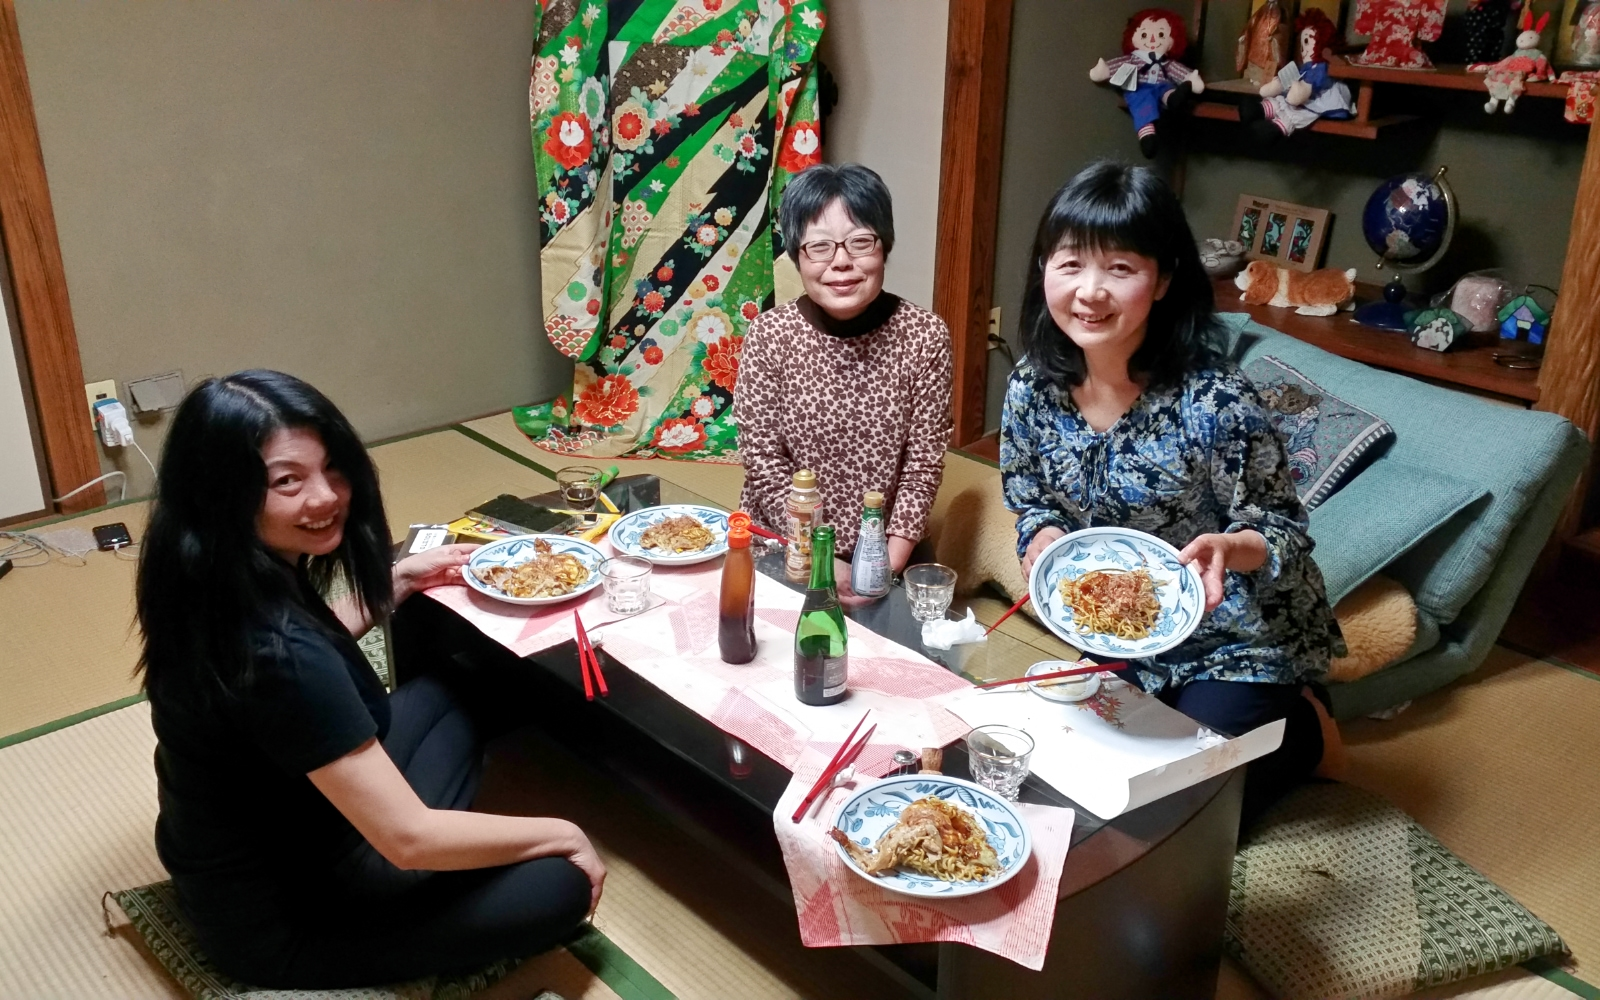 Homemade okonomiyaki and sake with our hosts in Mihara.